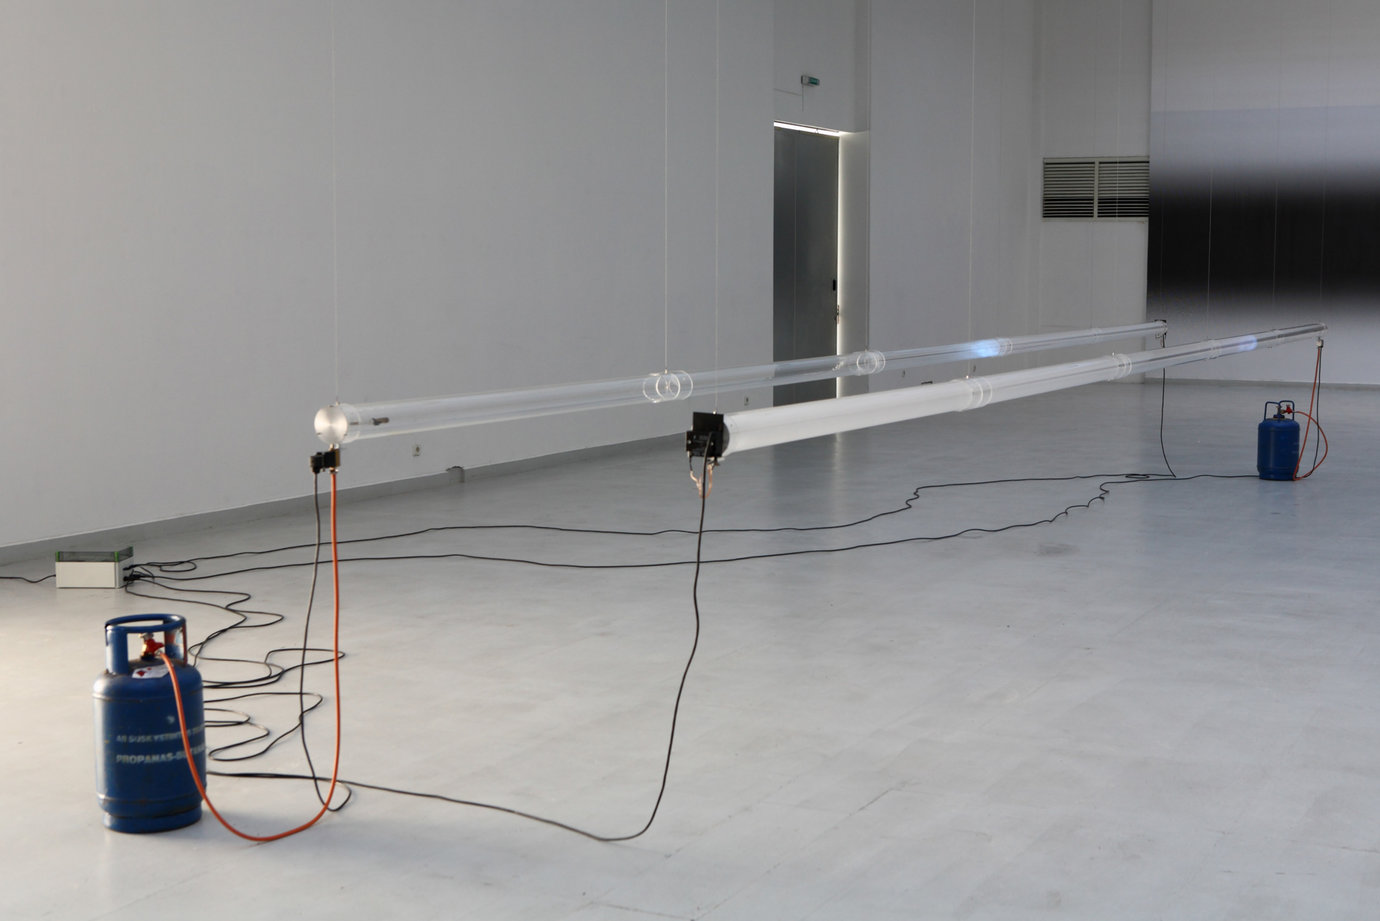 , 2007. perspex tubes, gas, igniting mechanism, installation dimensions variable, site specific.